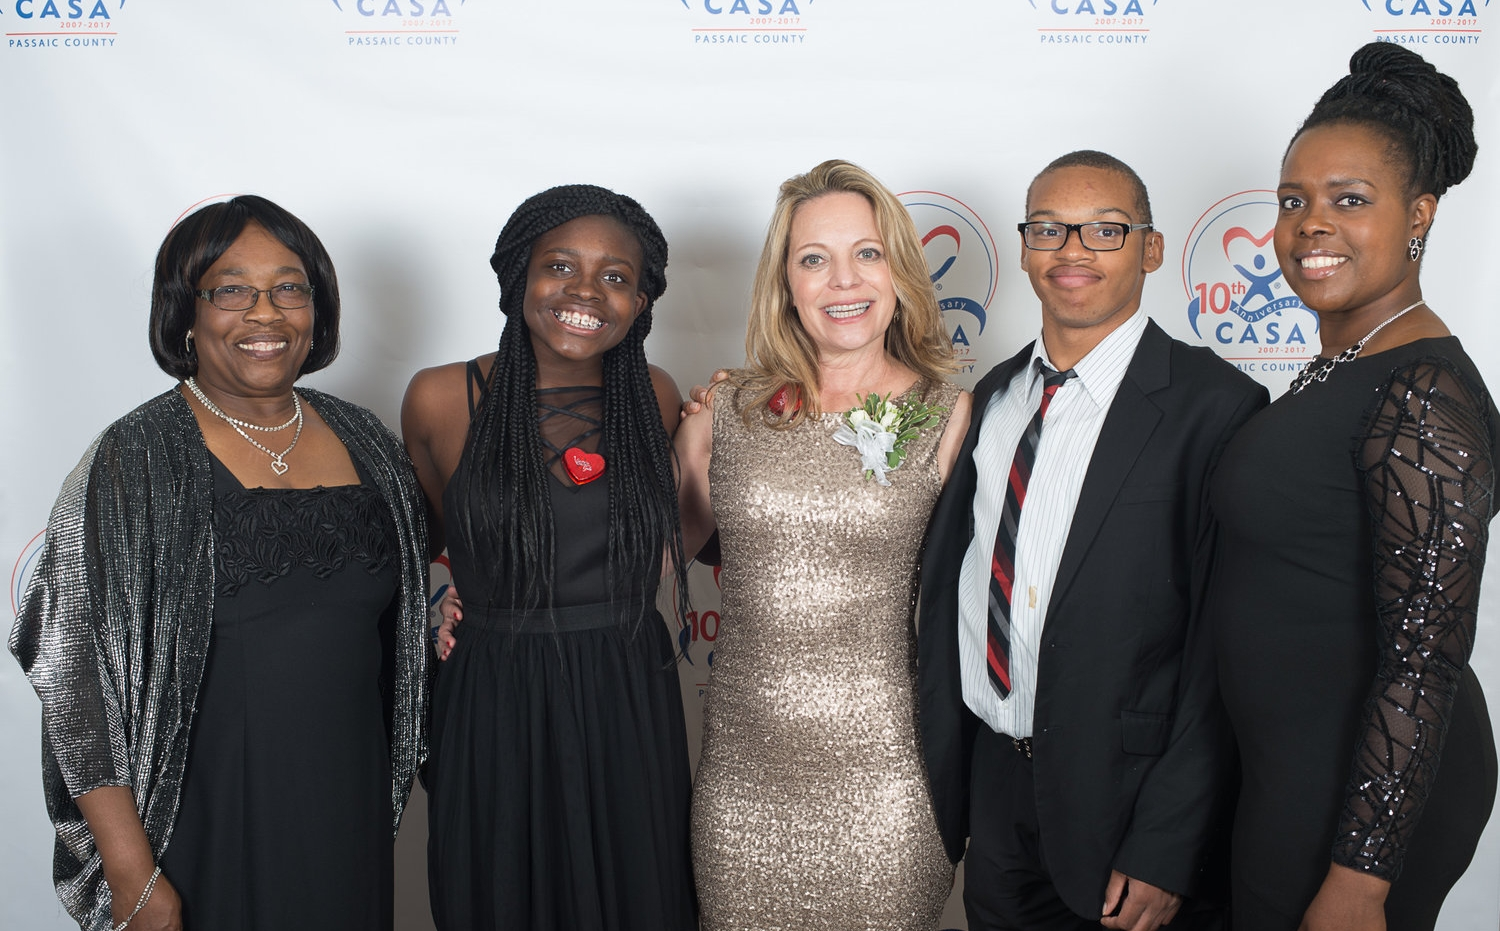 CASA volunteer Ann Rose, Tommy Williams, his mother Martha, and other family members at the Voices for Children Gala.